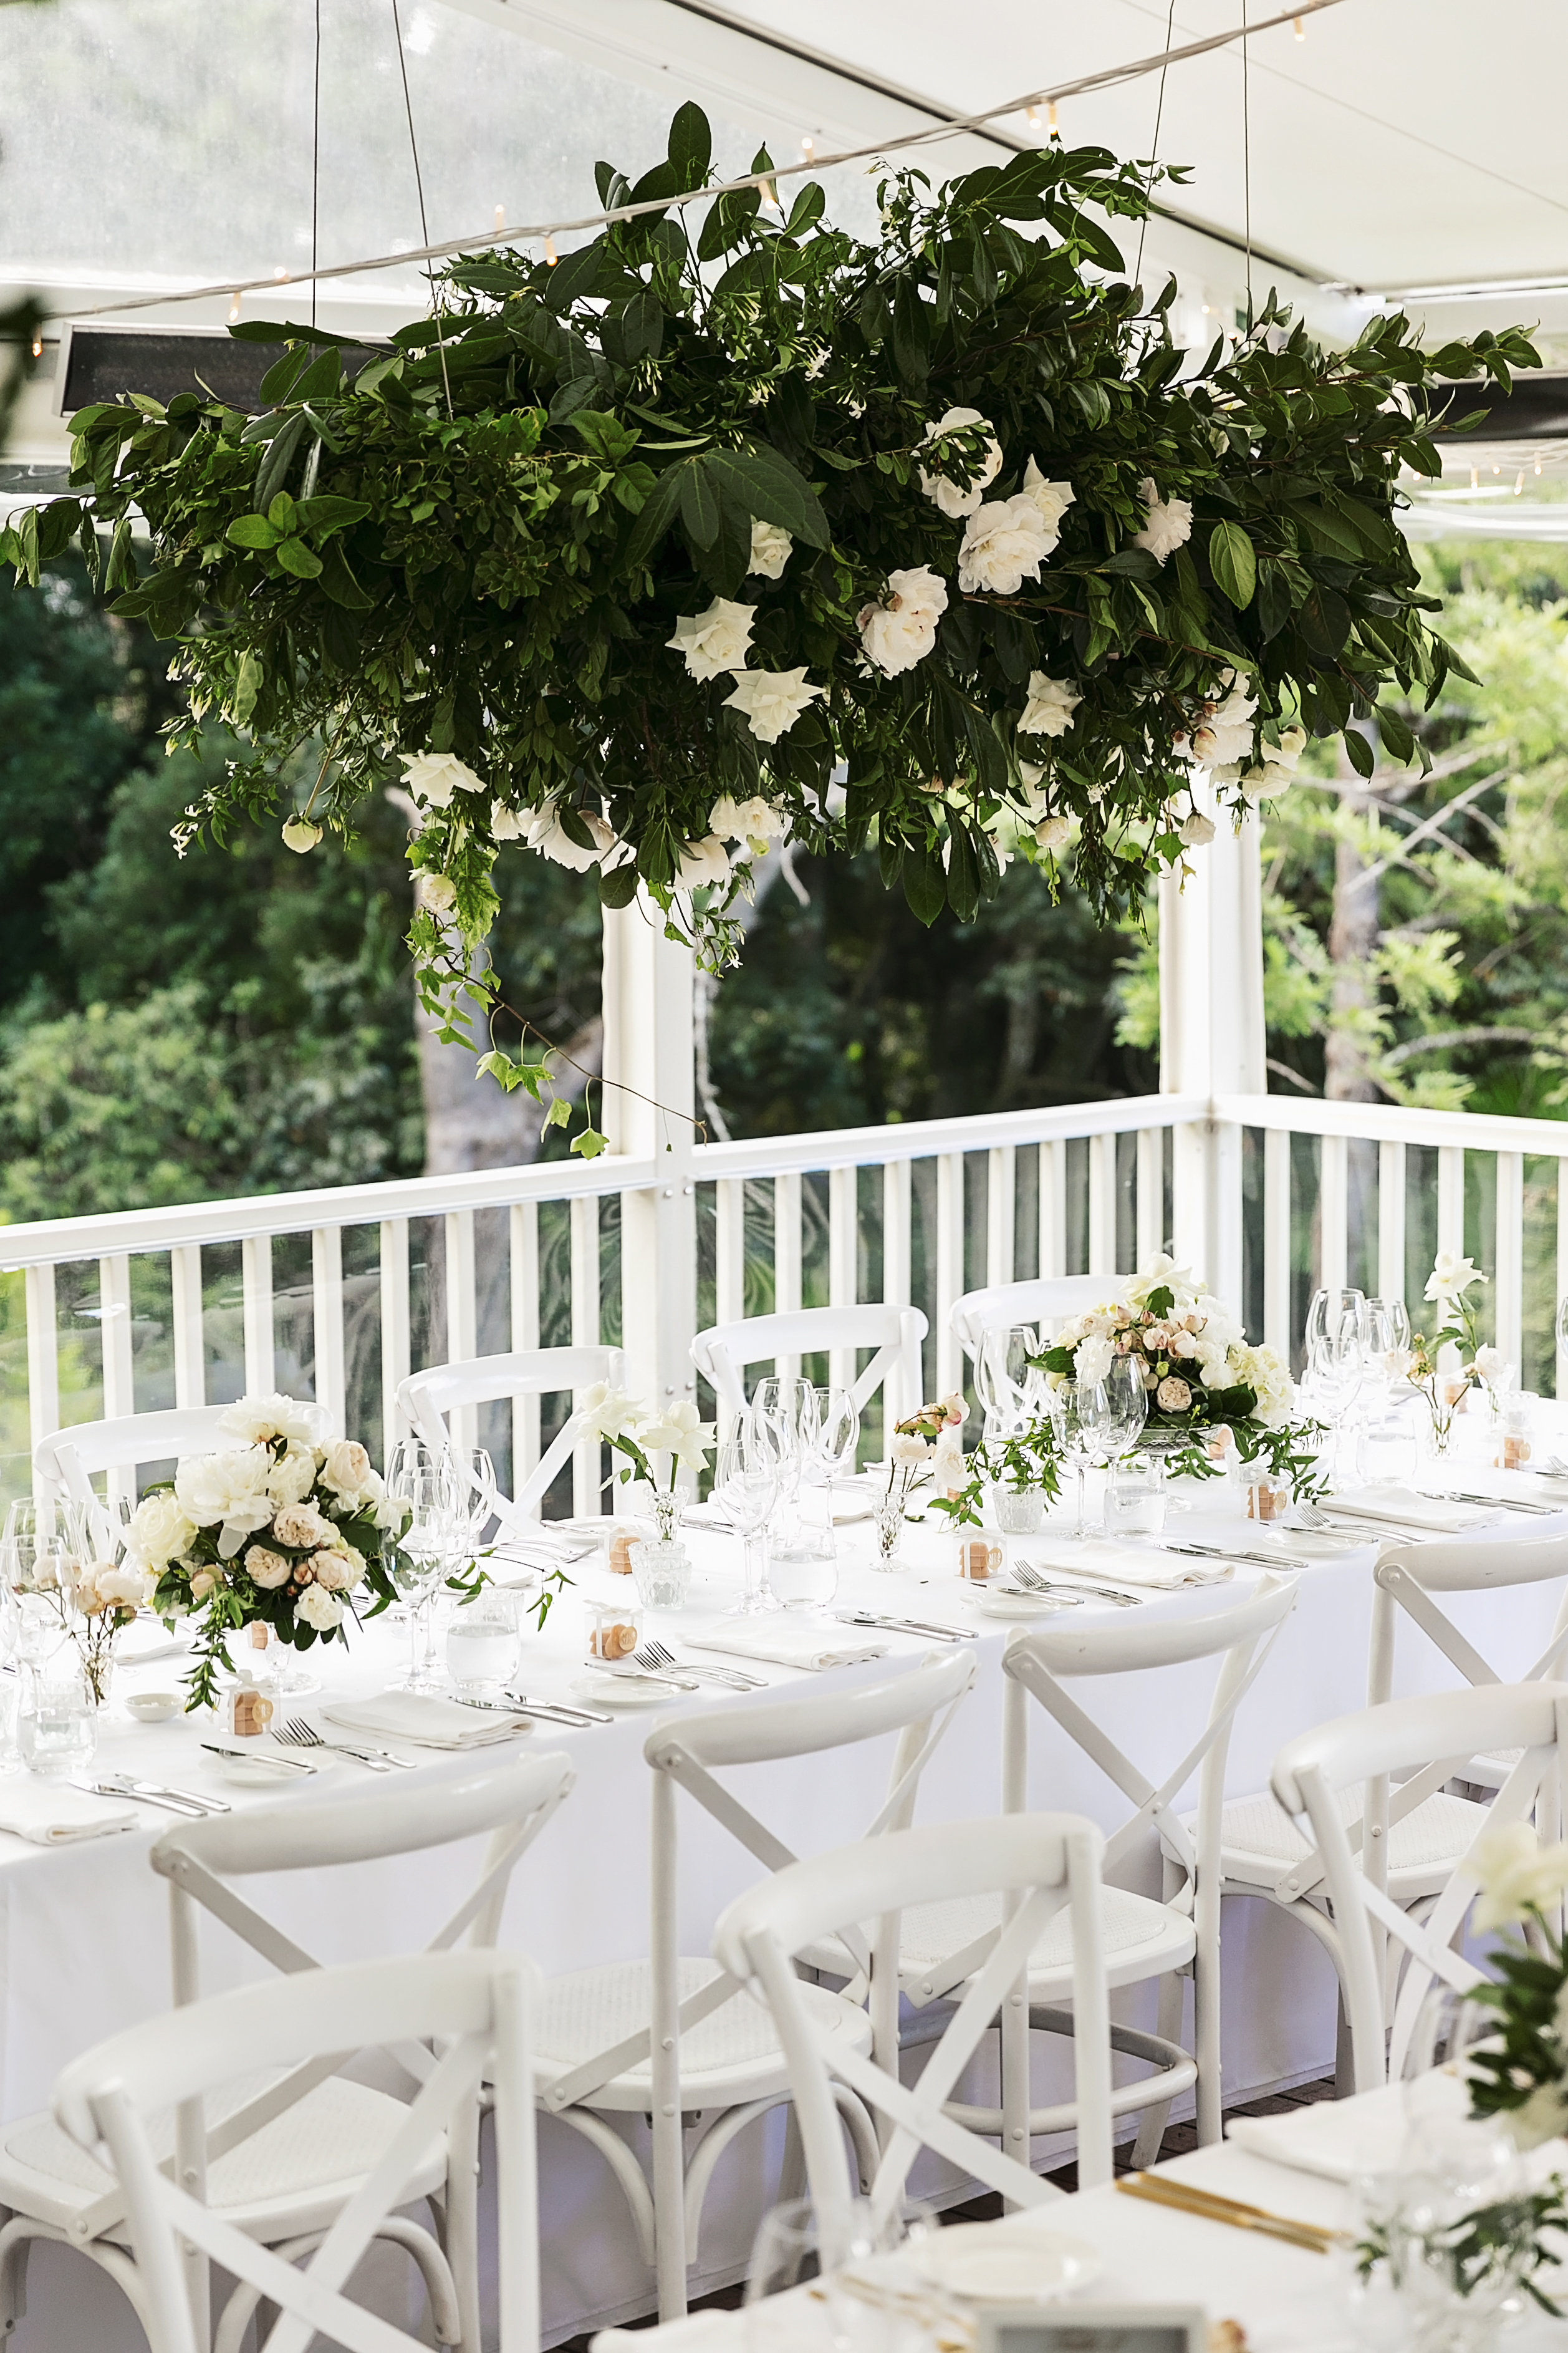 Hanging installation with lush greenery and white roses